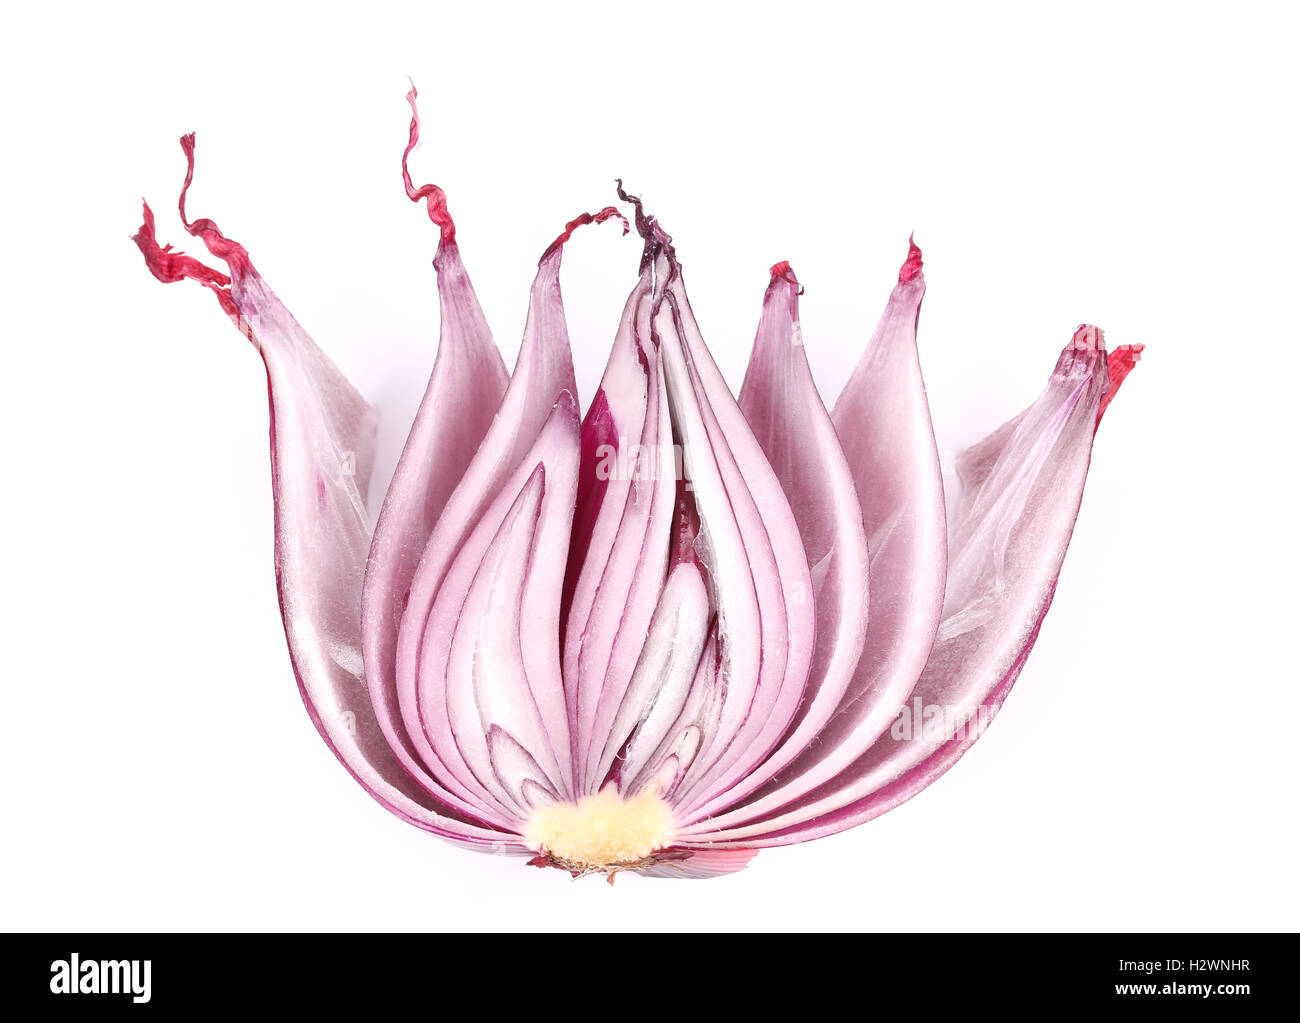 Close up of red onions half. - Stock Image